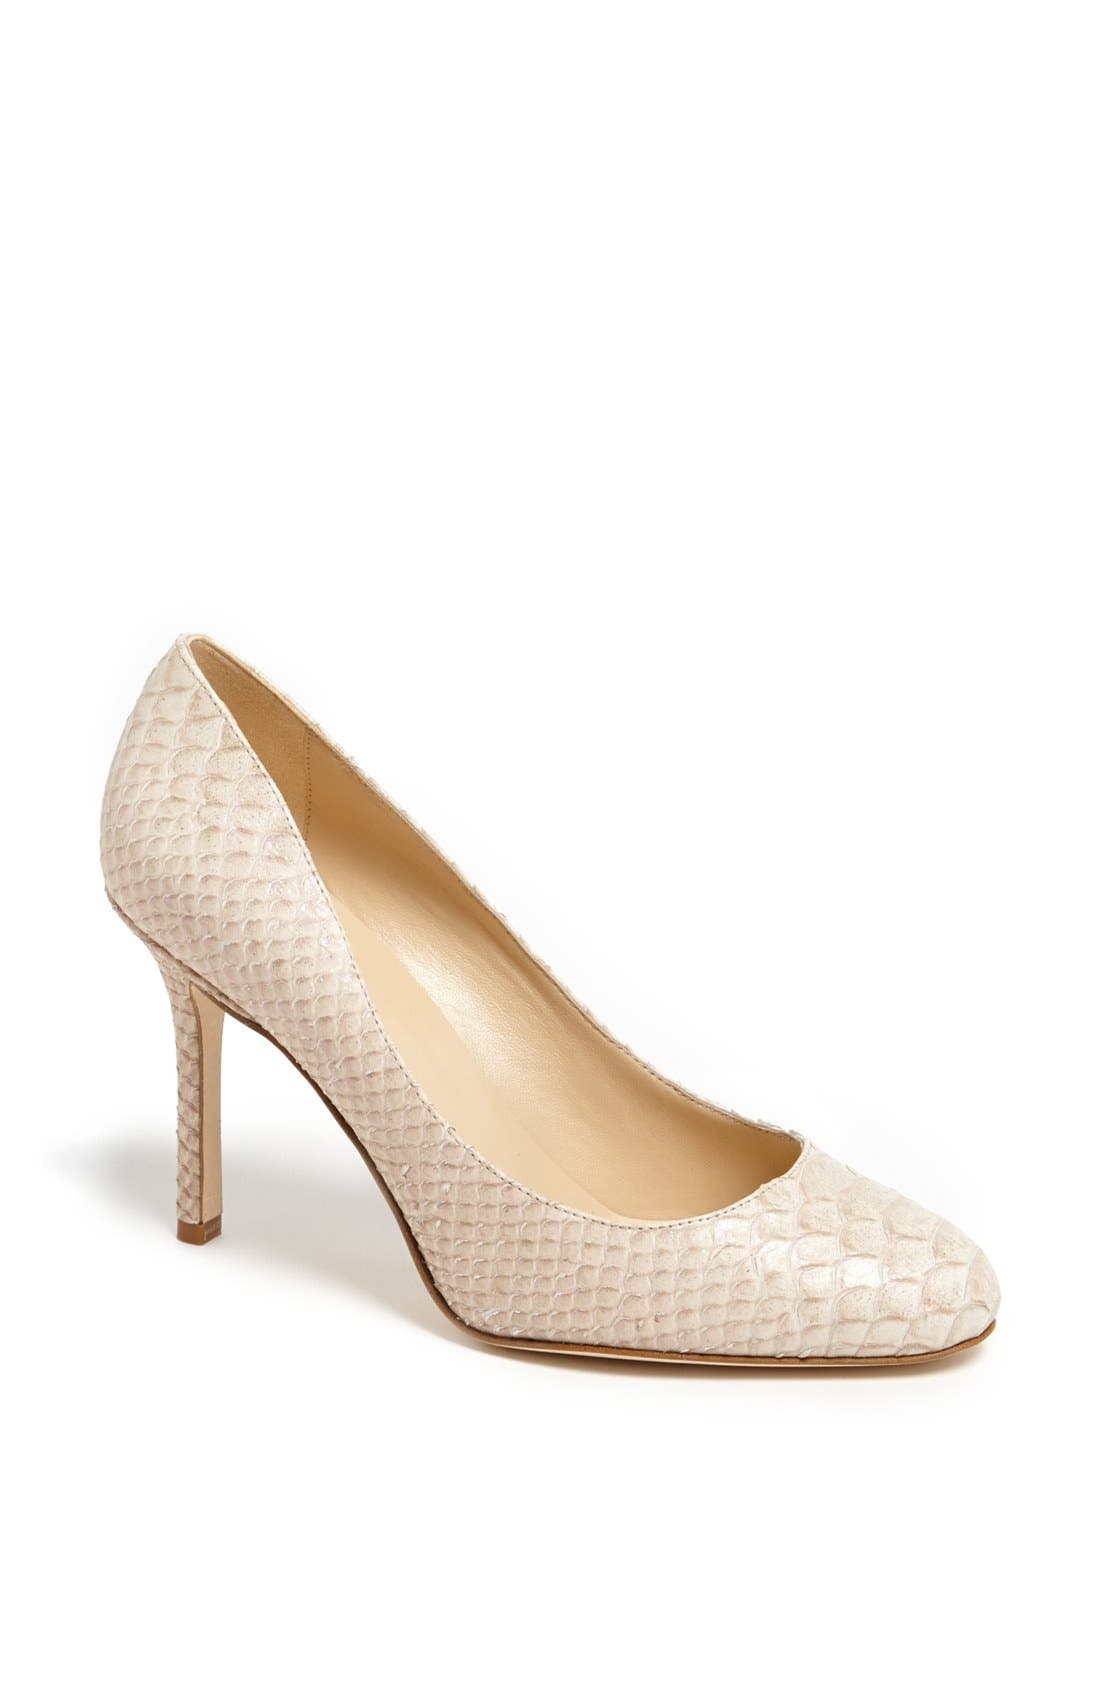 Alternate Image 1 Selected - kate spade new york 'arielle' round toe pump